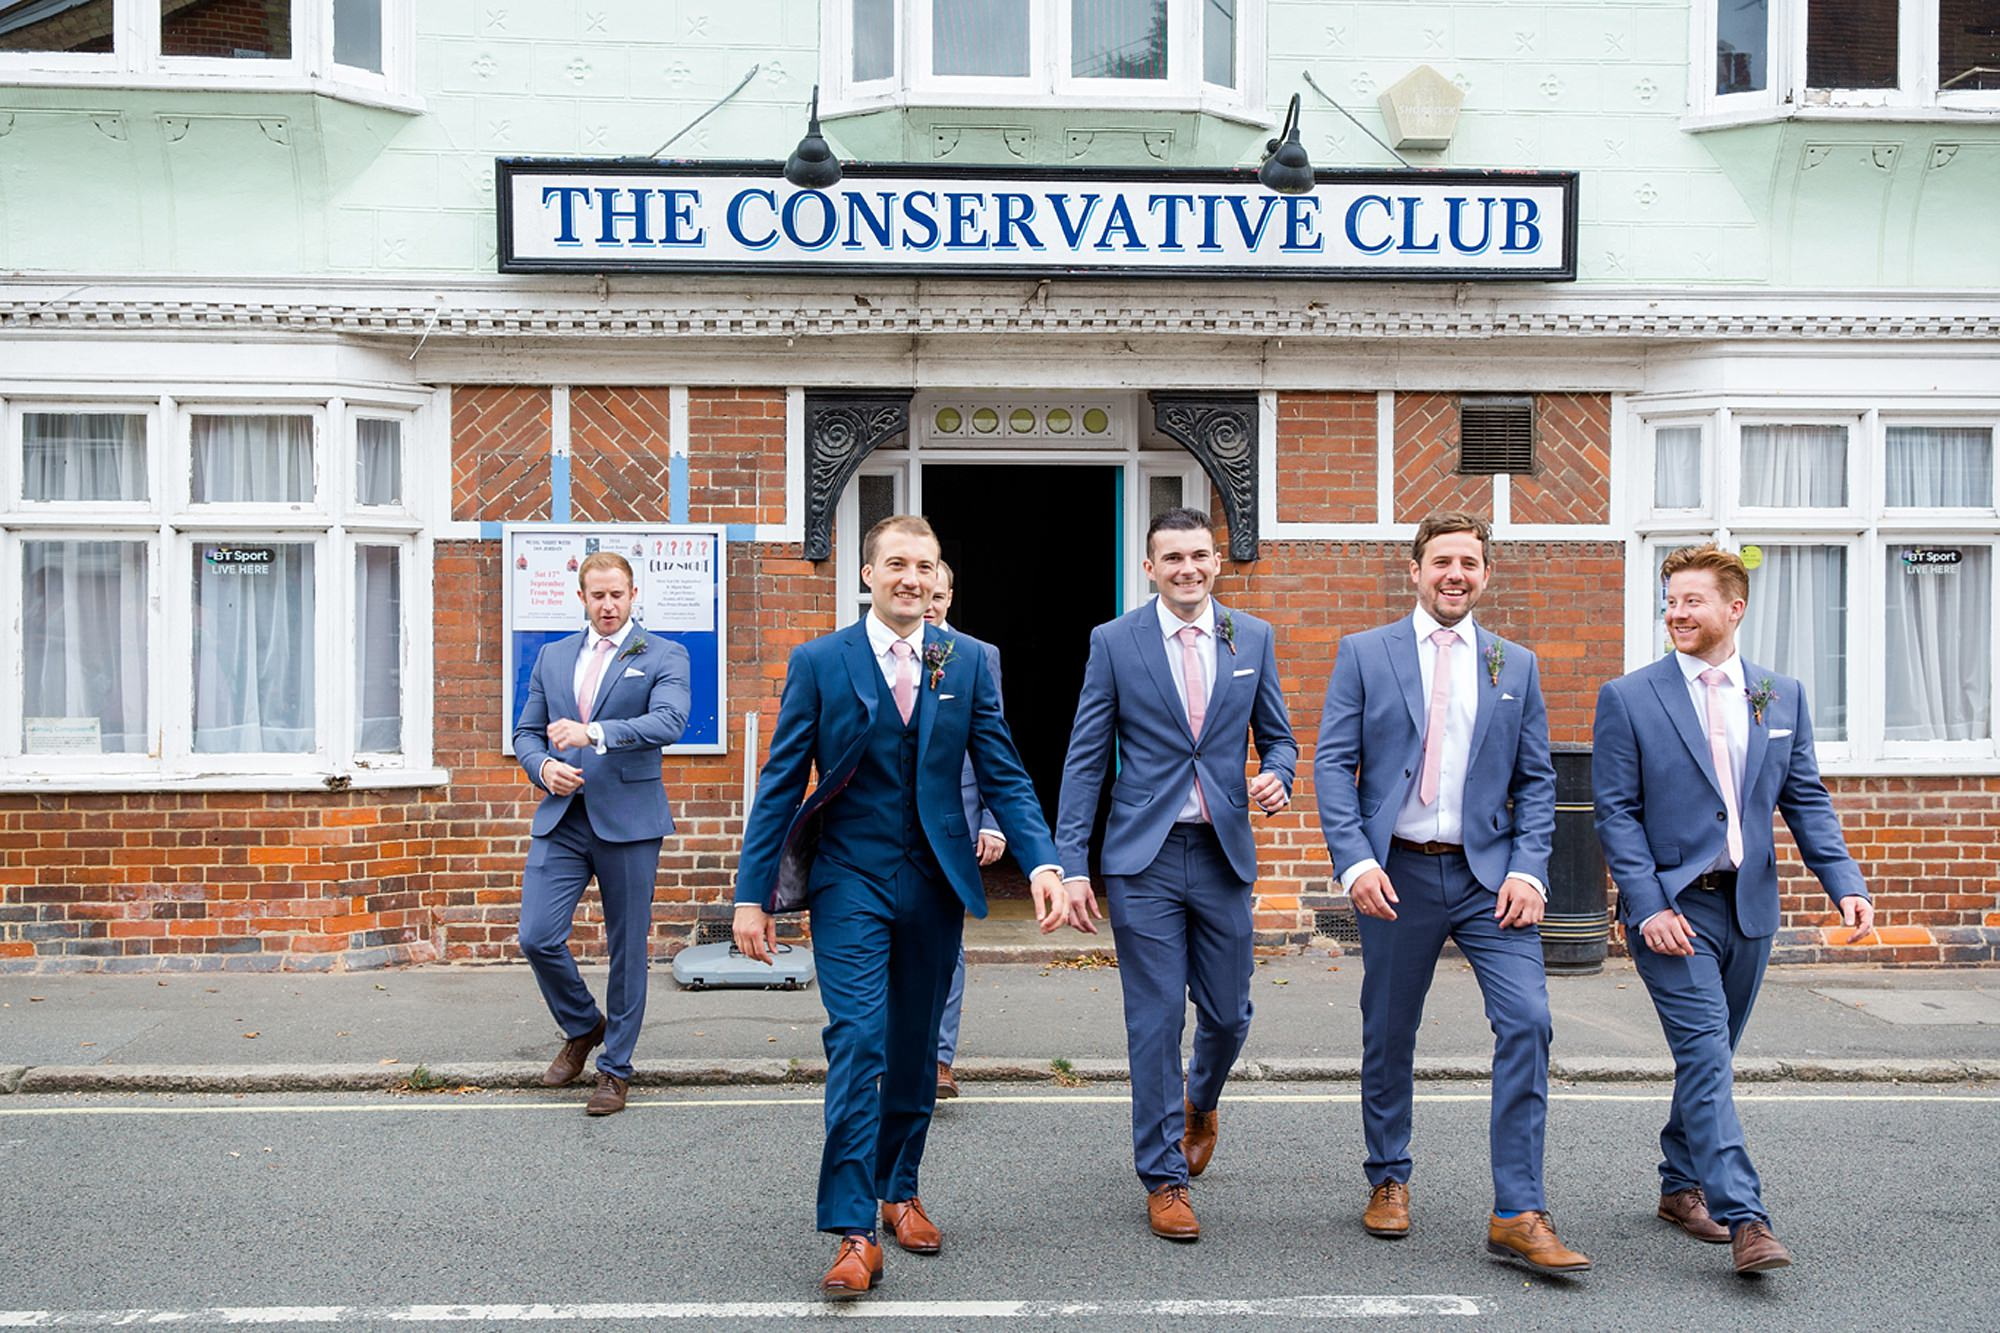 Marks Hall Estate wedding photography groom's party outside conservative club